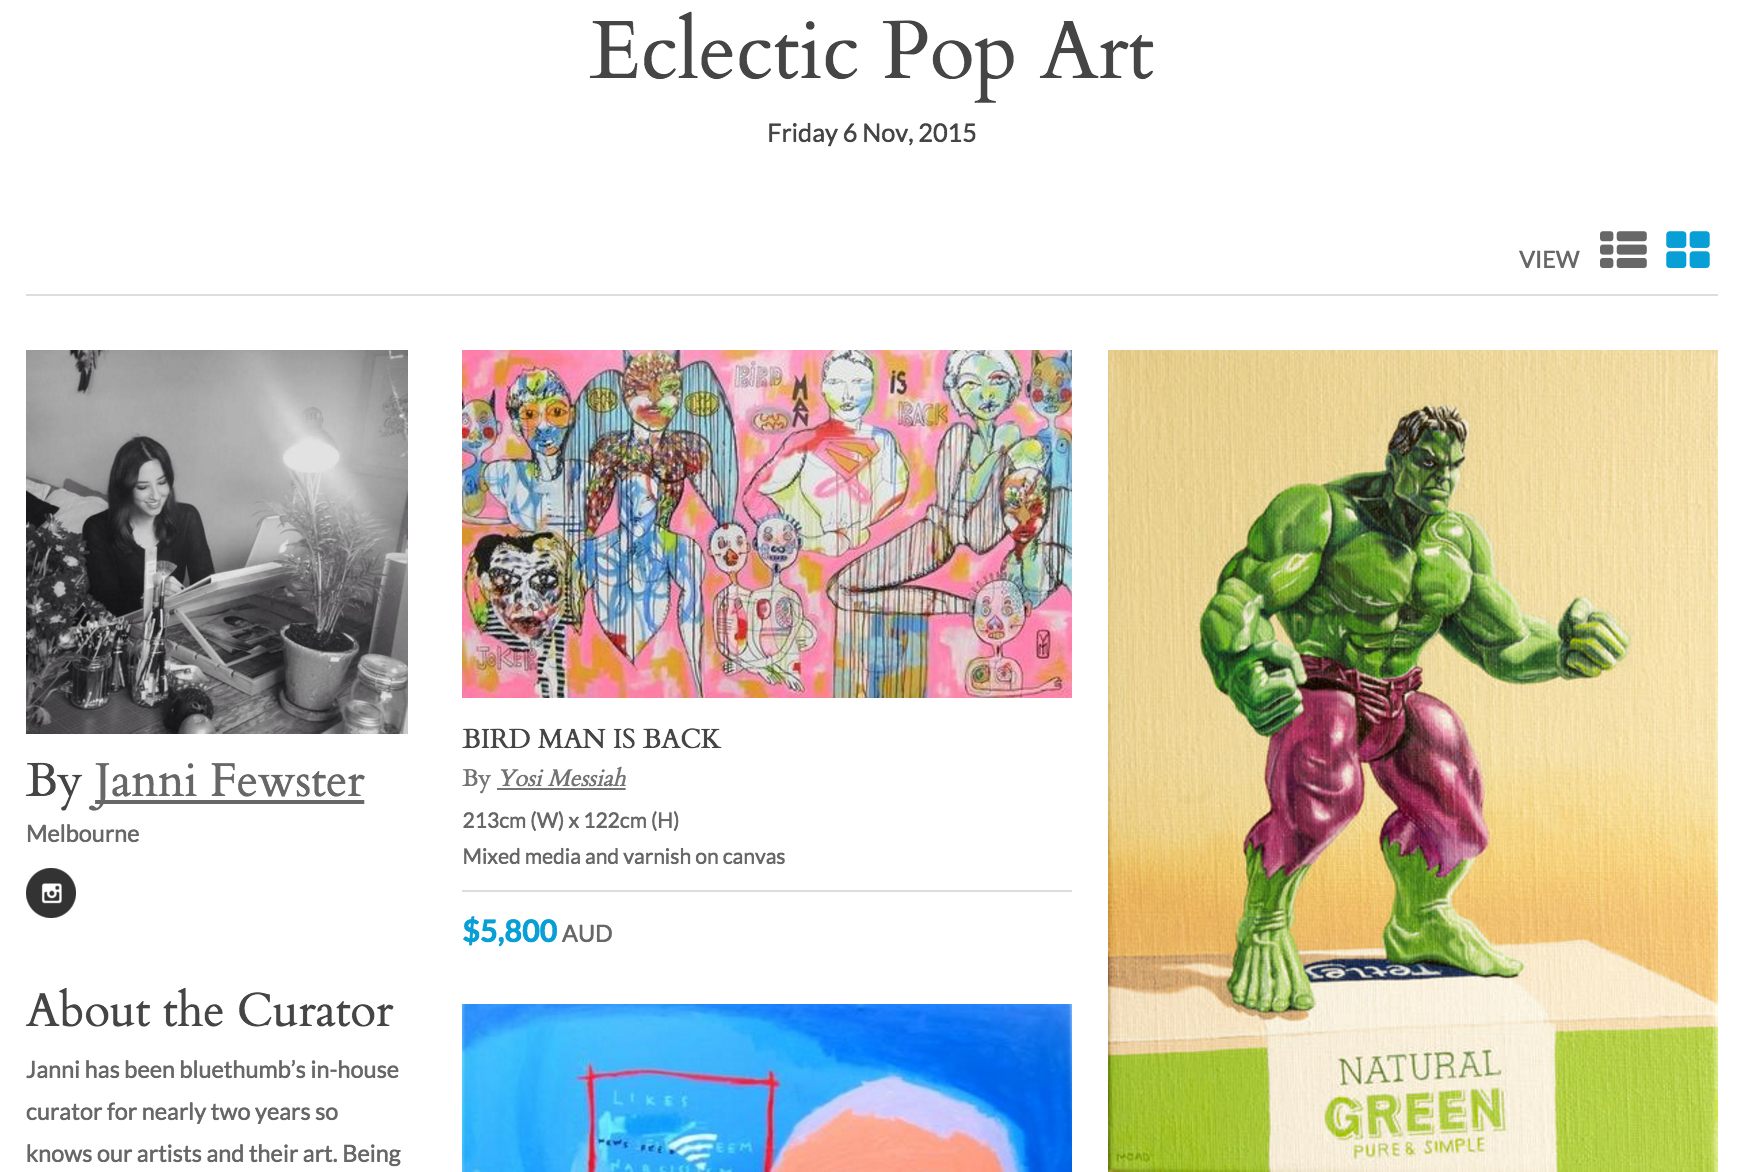 Curation page